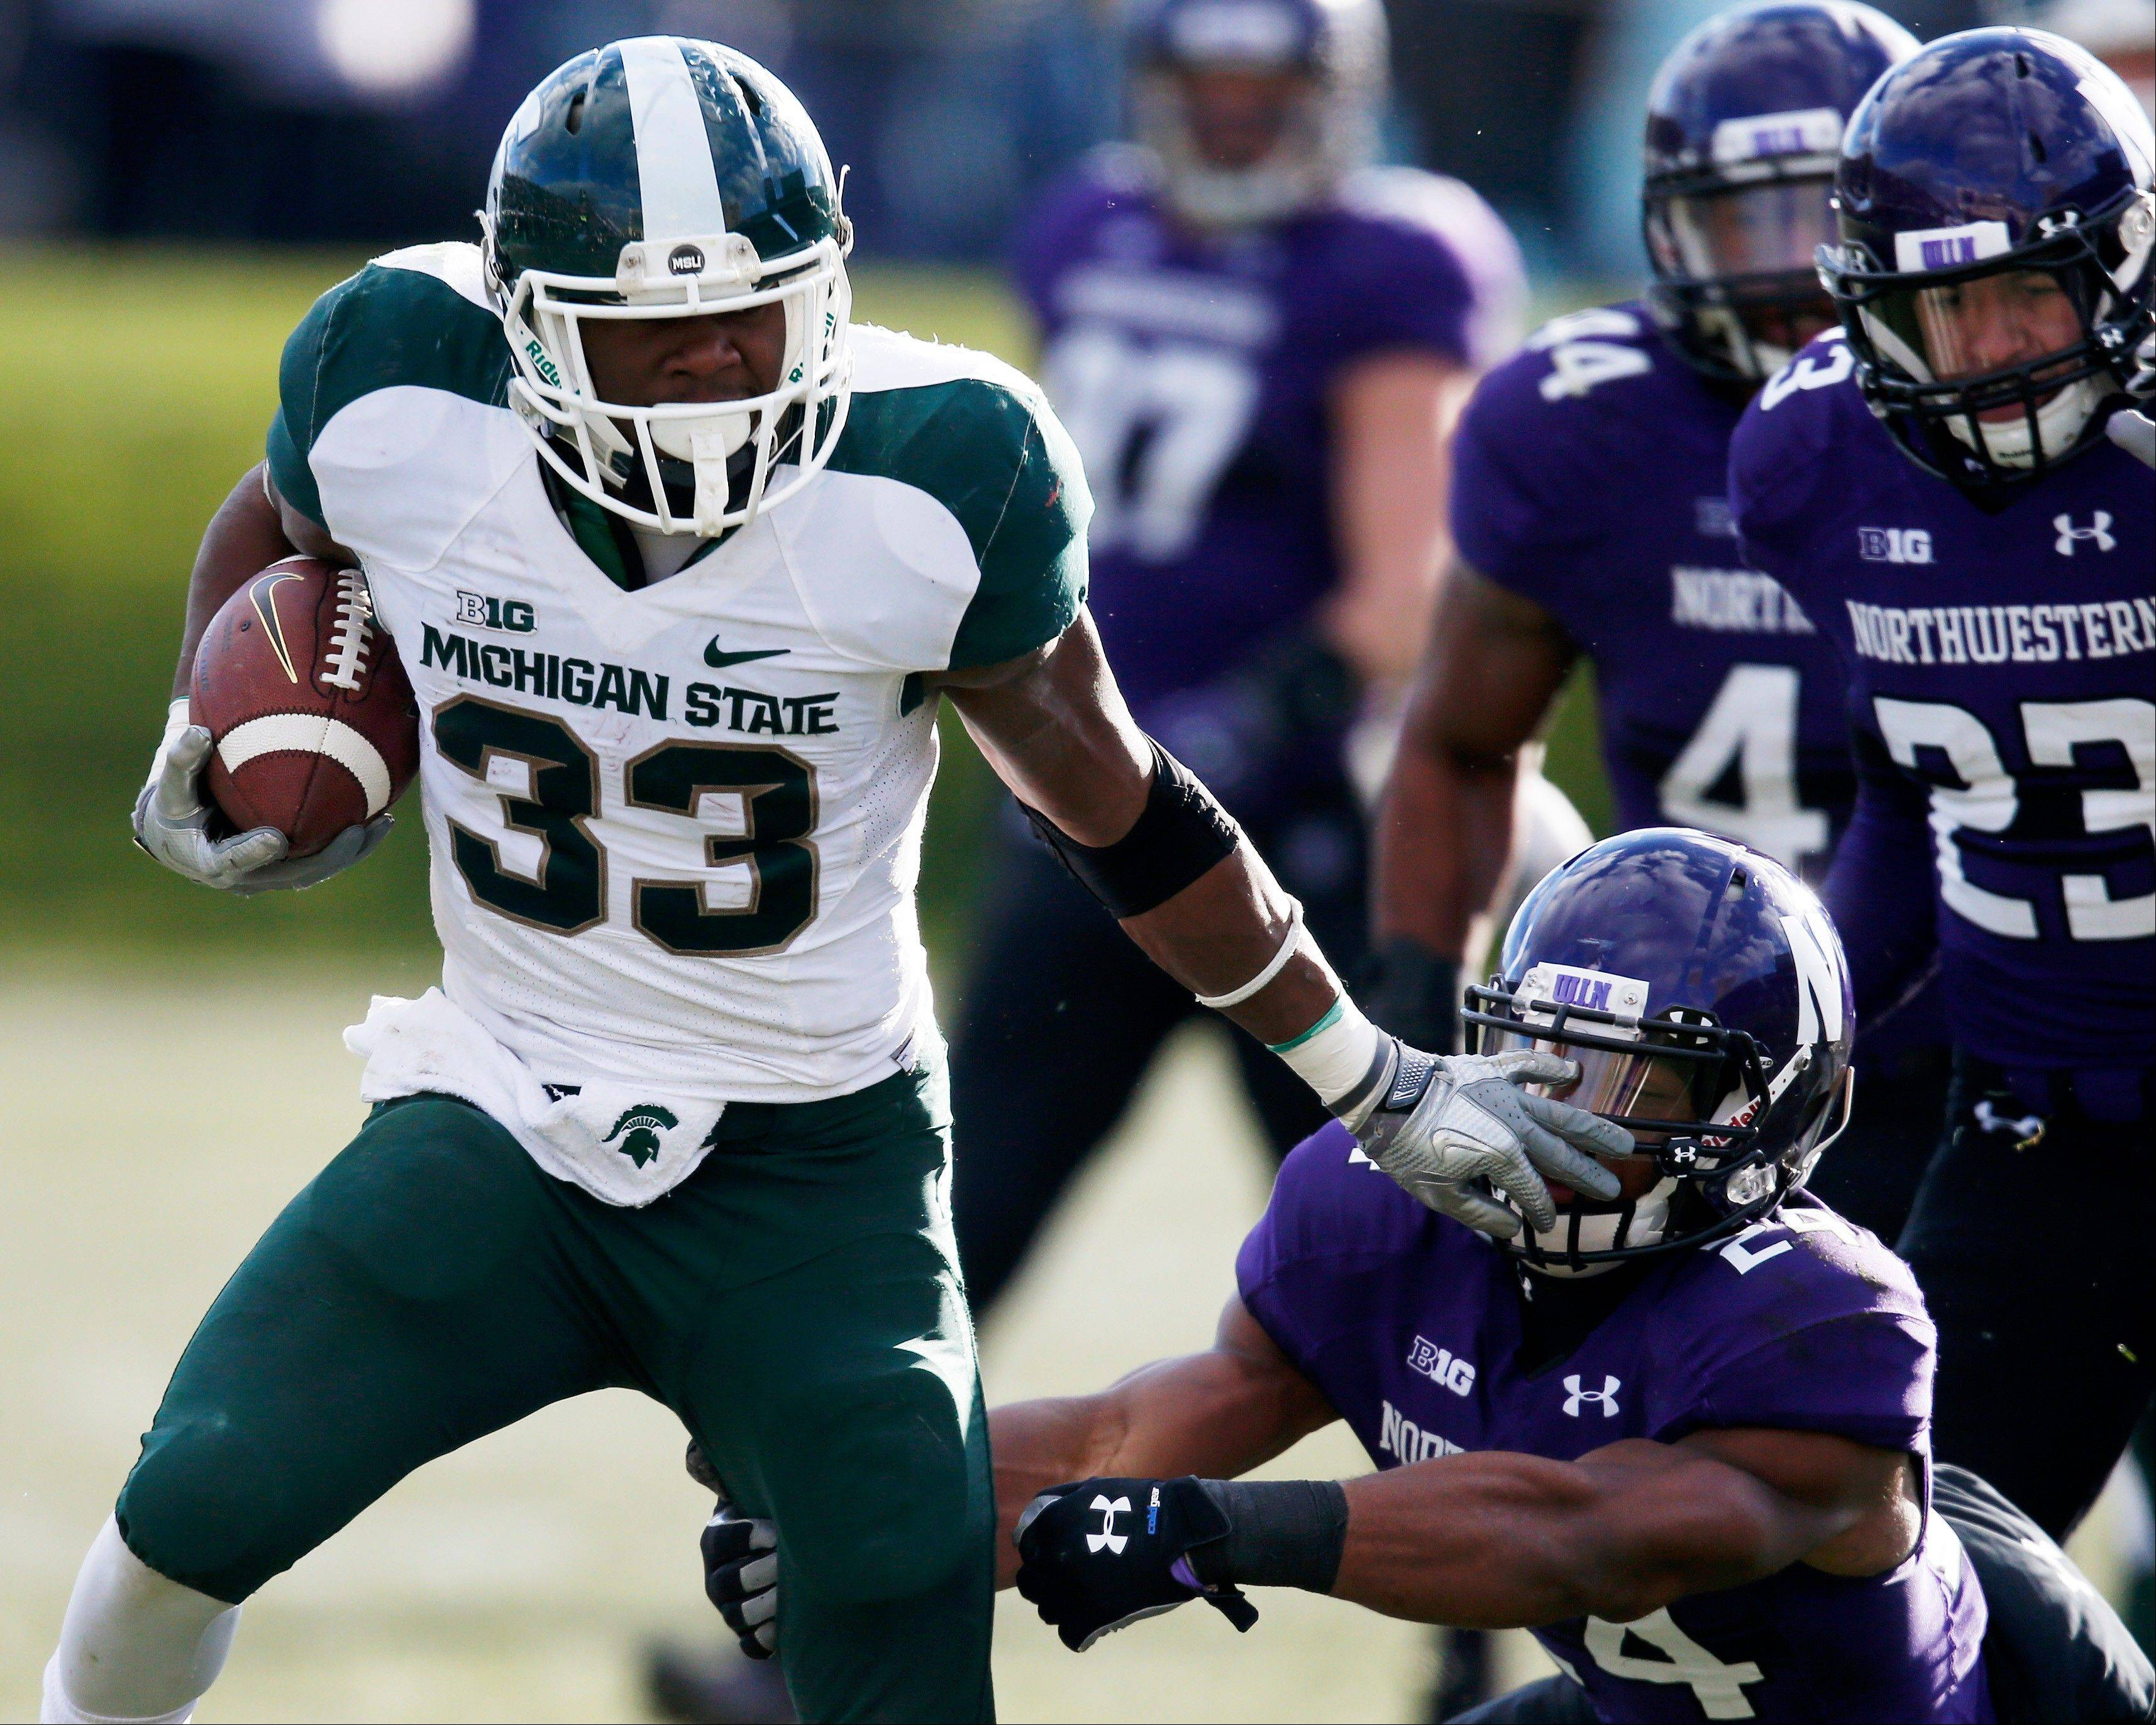 Michigan State running back Jeremy Langford (33) shakes off Northwestern safety Ibraheim Campbell (24) on a touchdown scoring run during the second half of an NCAA football game on Saturday, Nov. 23, 2013, in Evanston, Ill. (AP Photo/Andrew A. Nelles)